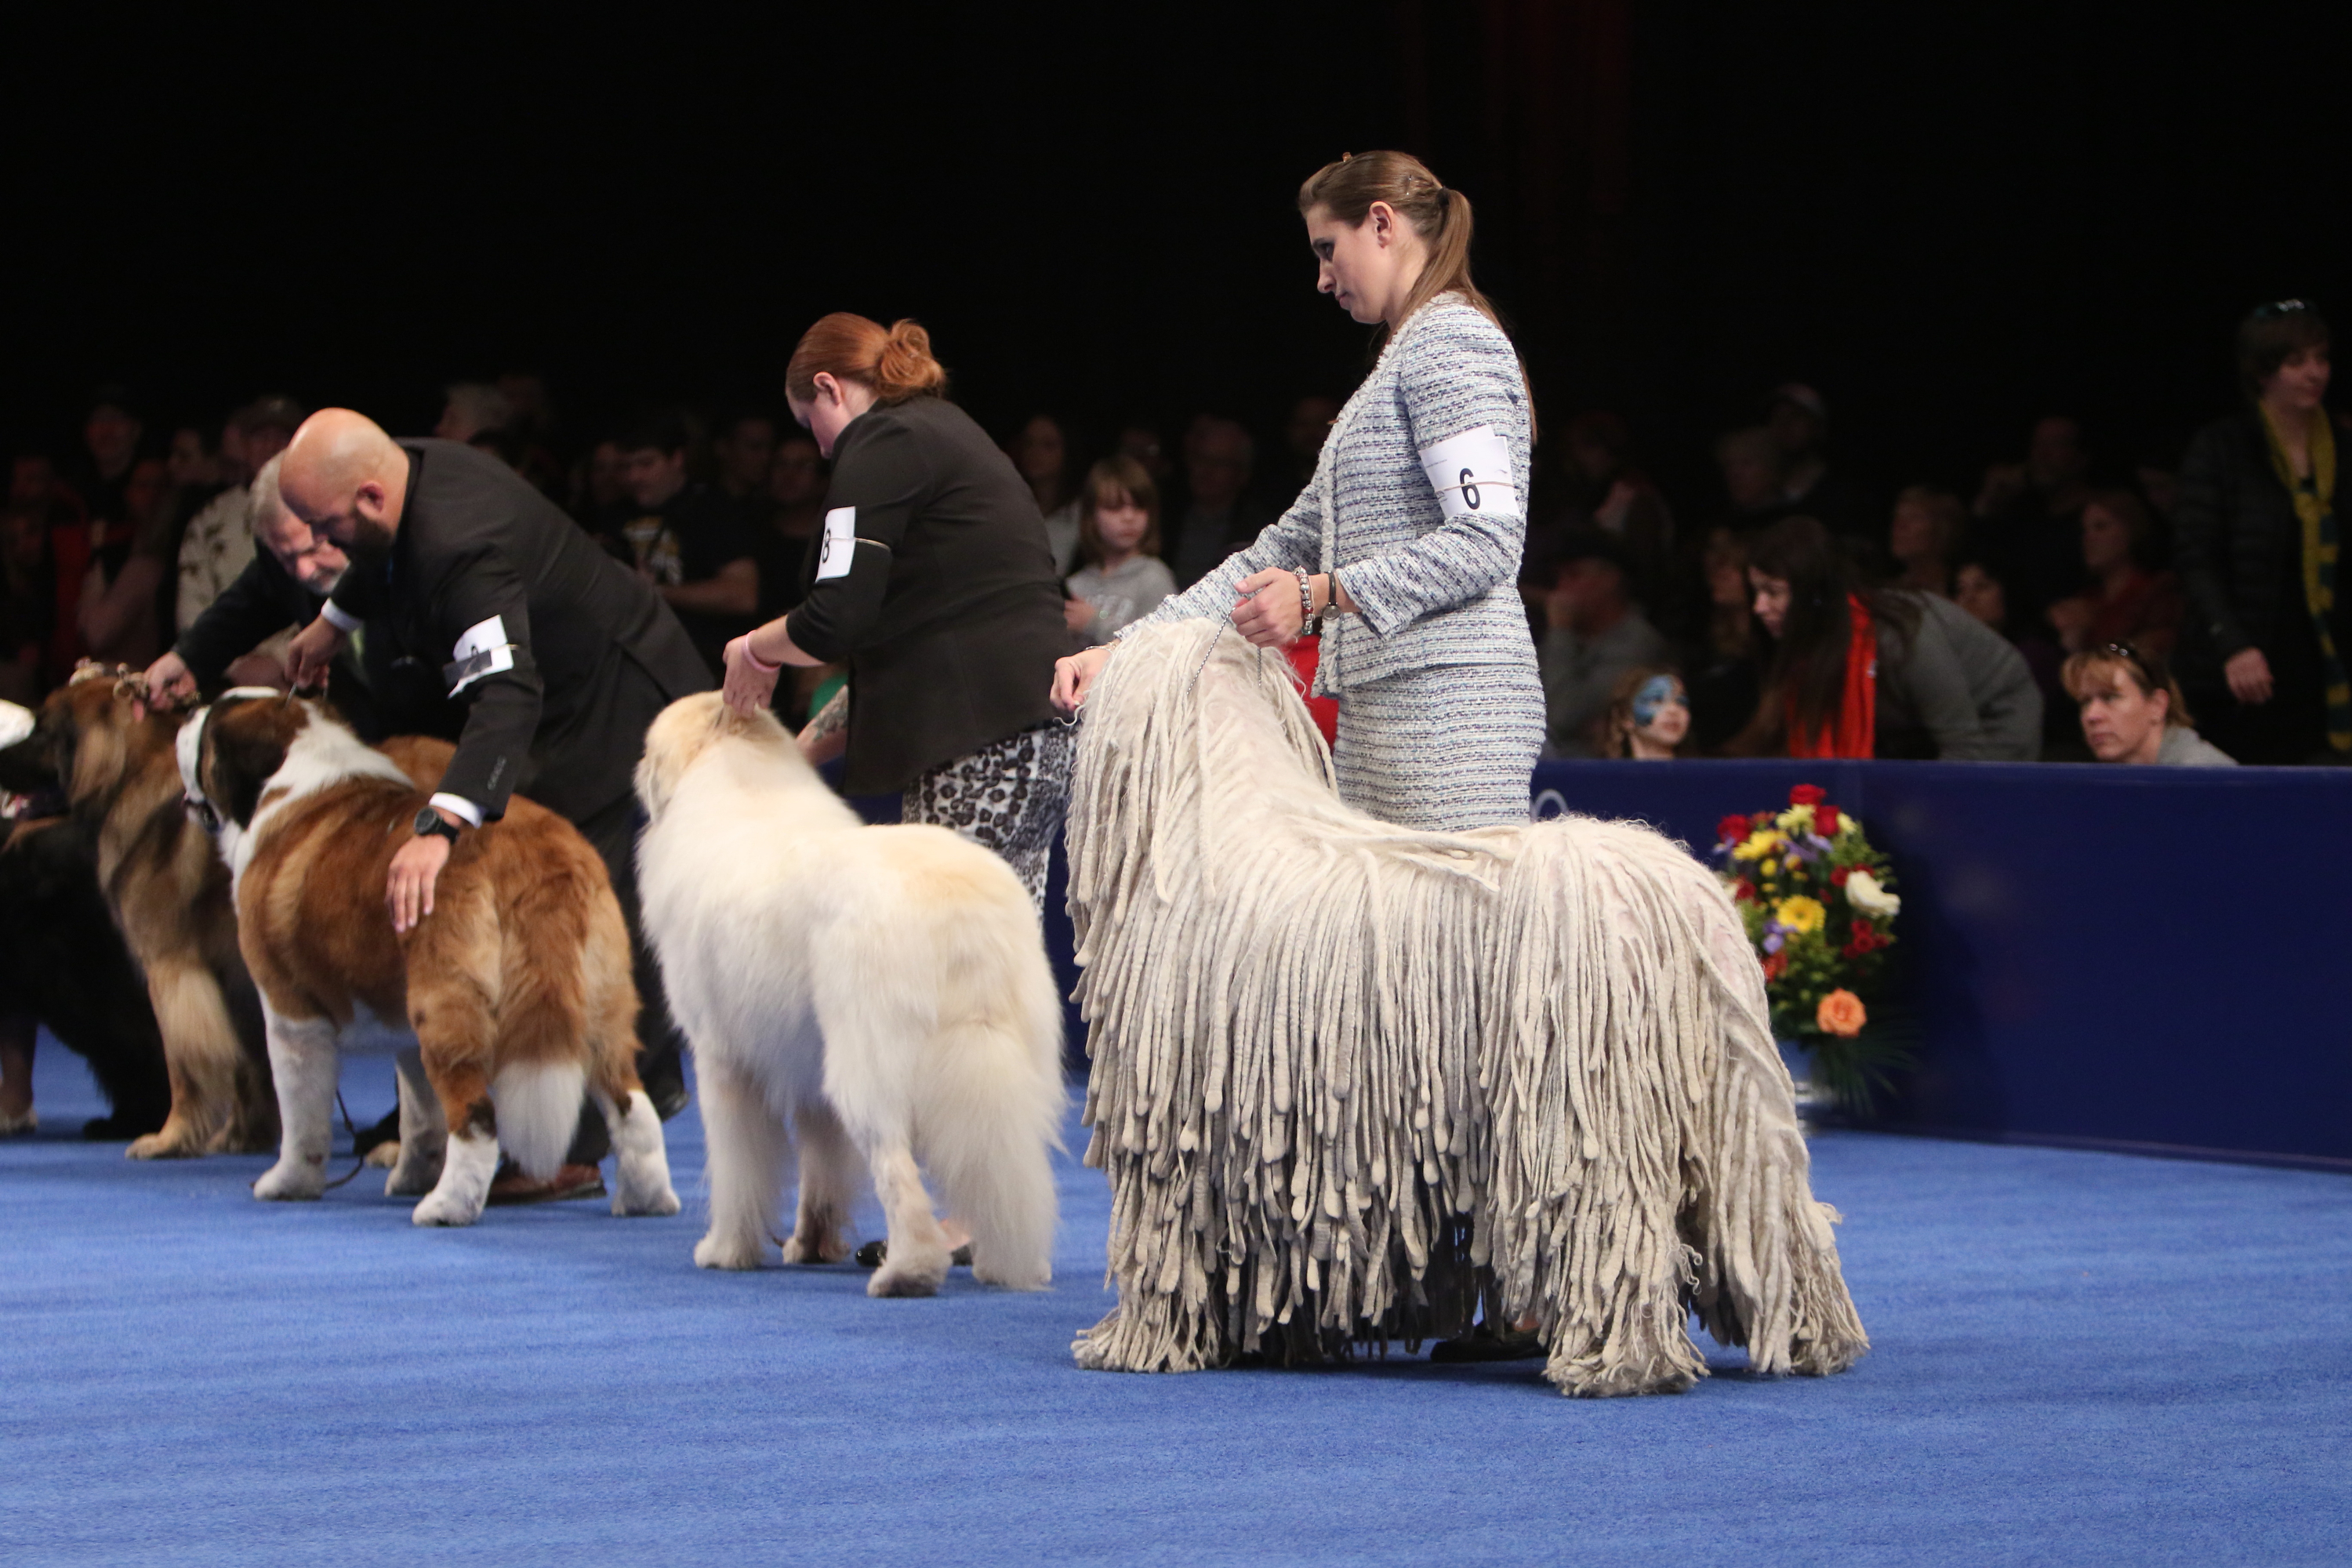 National Westminster Dog Show